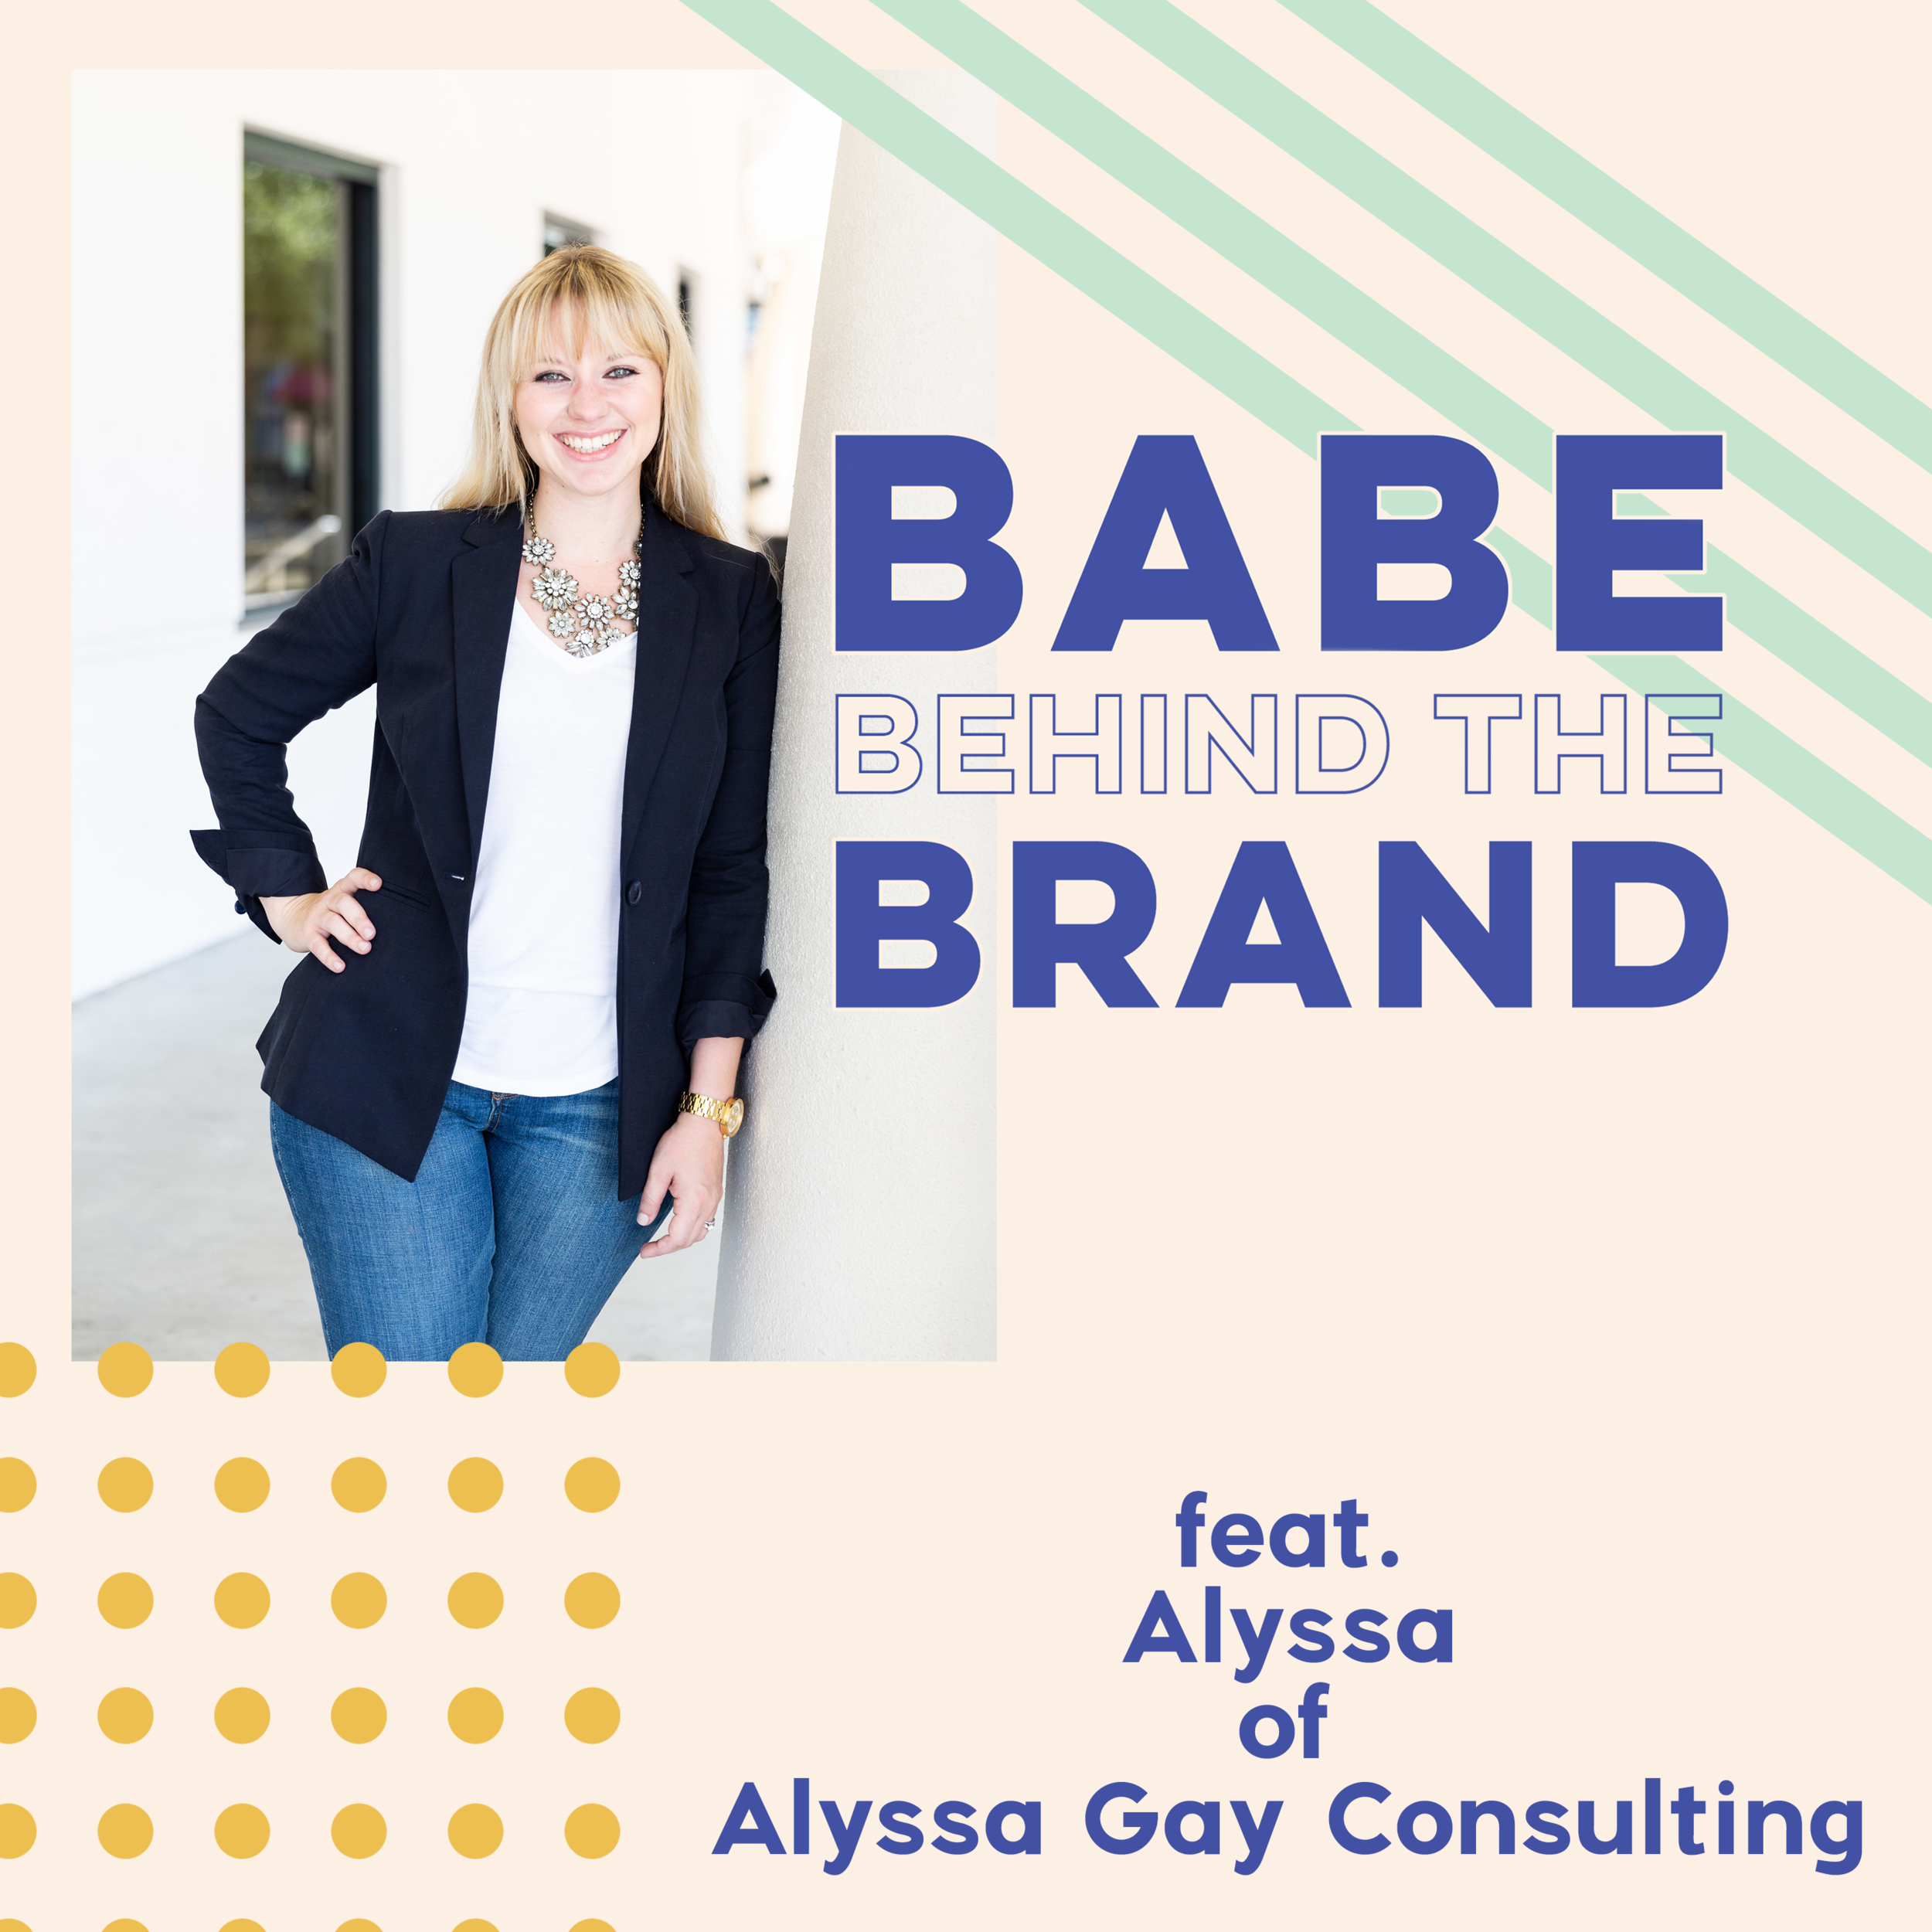 Alyssa-gay-consulting-babe-behind-the-brand-podcast-babe-crafted.png